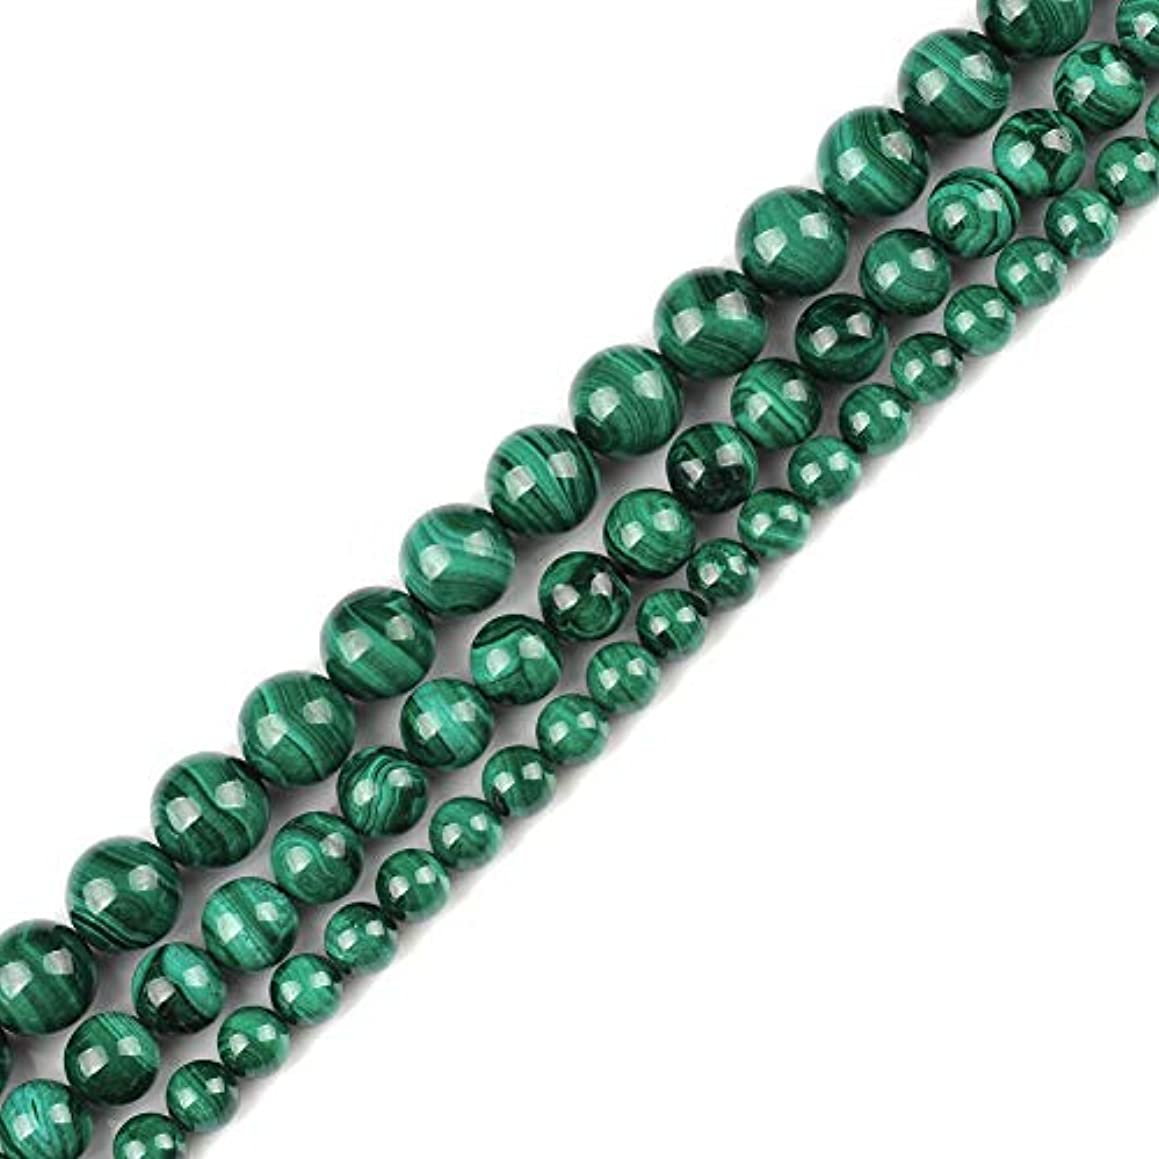 Genuine Natural Real Smooth Round Malachite Gemstone Beads Loose Beads for Jewelry Making Approxi 15.5